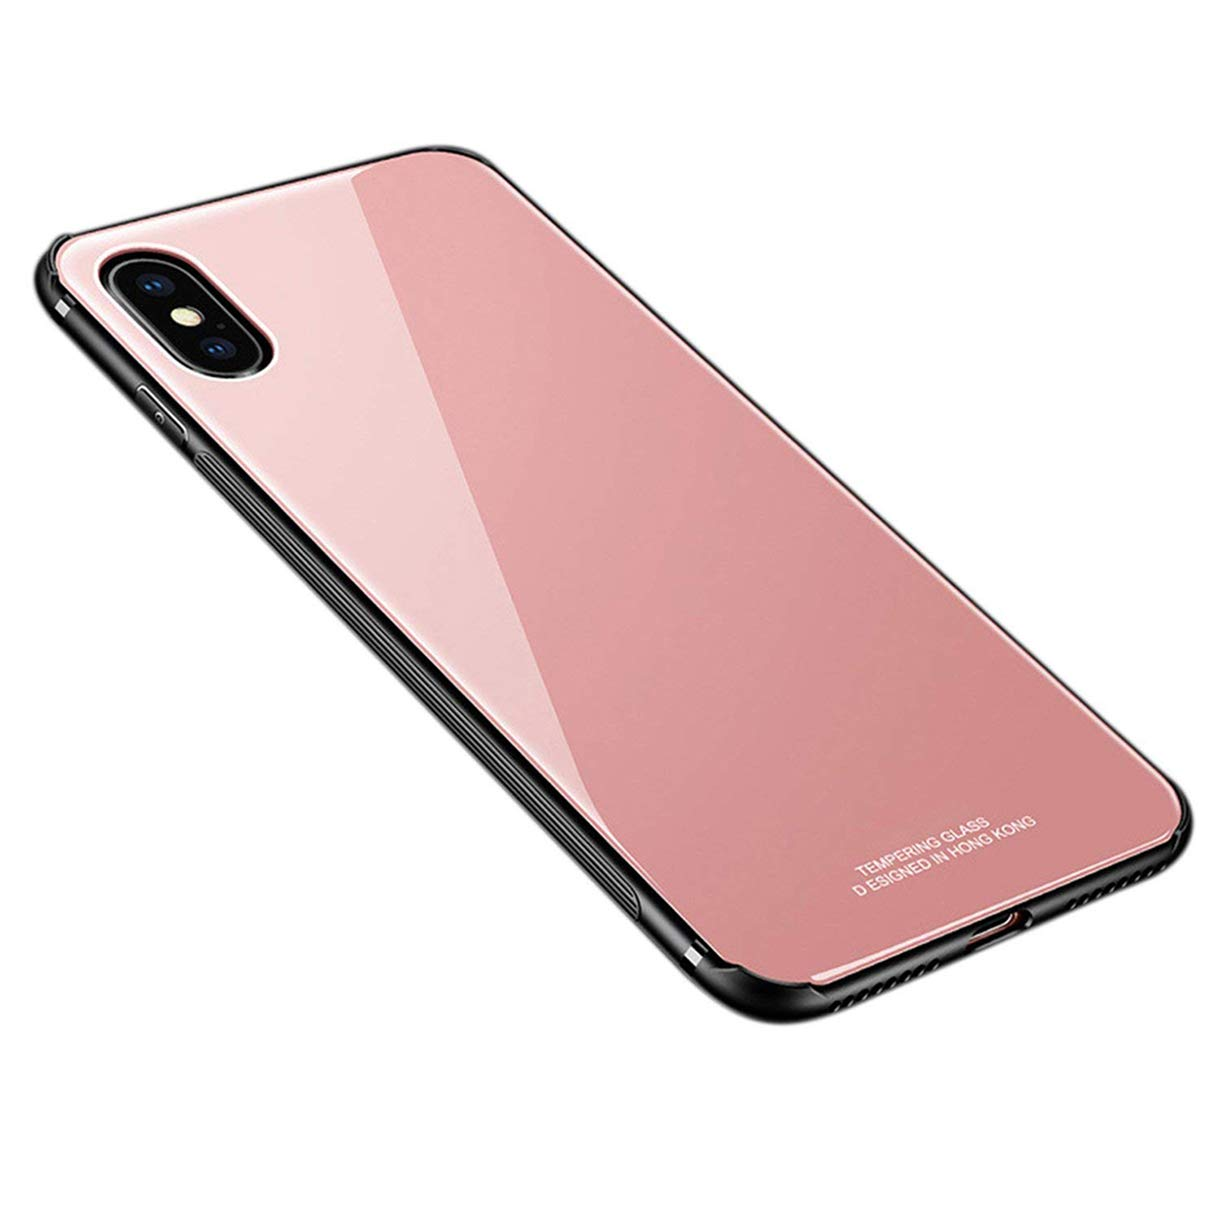 buy online 10723 38575 iPhone Xs Max Case,Tempered Glass Back Cover TPU Frame Slim Case for iPhone  Xs Max (Rose Gold)